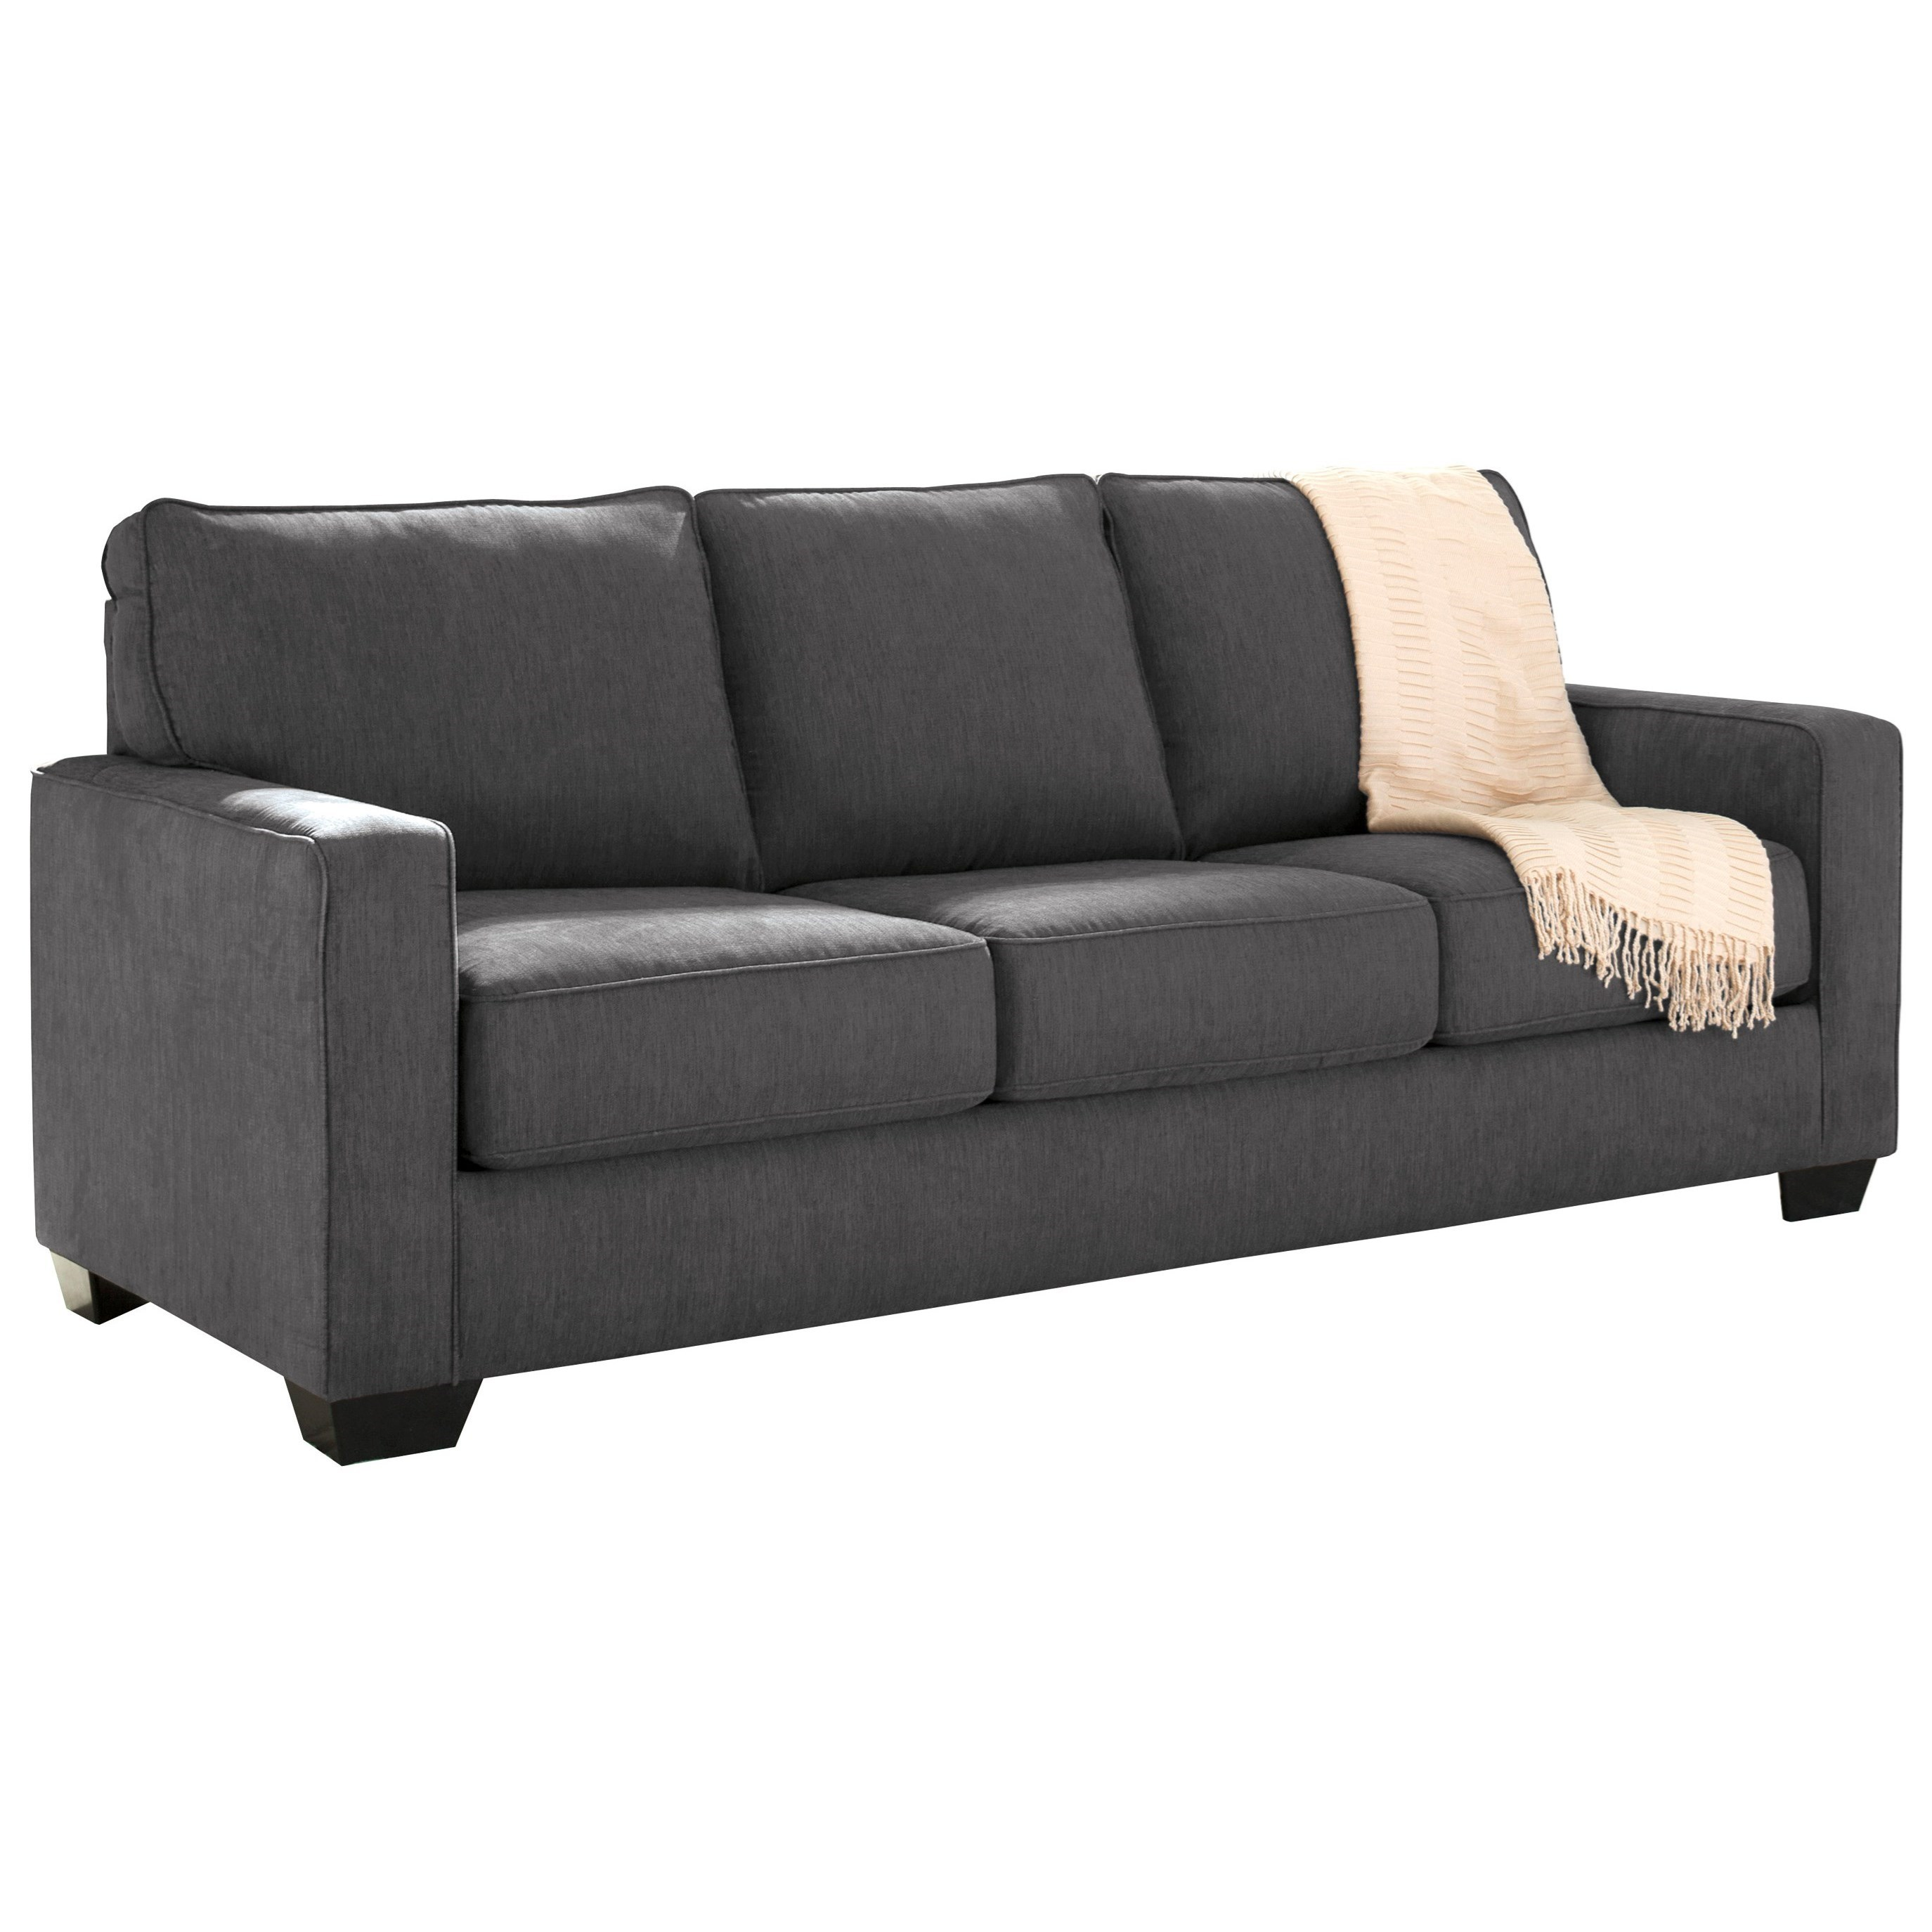 Signature Design by Ashley Zeb Queen Sofa Sleeper with ...